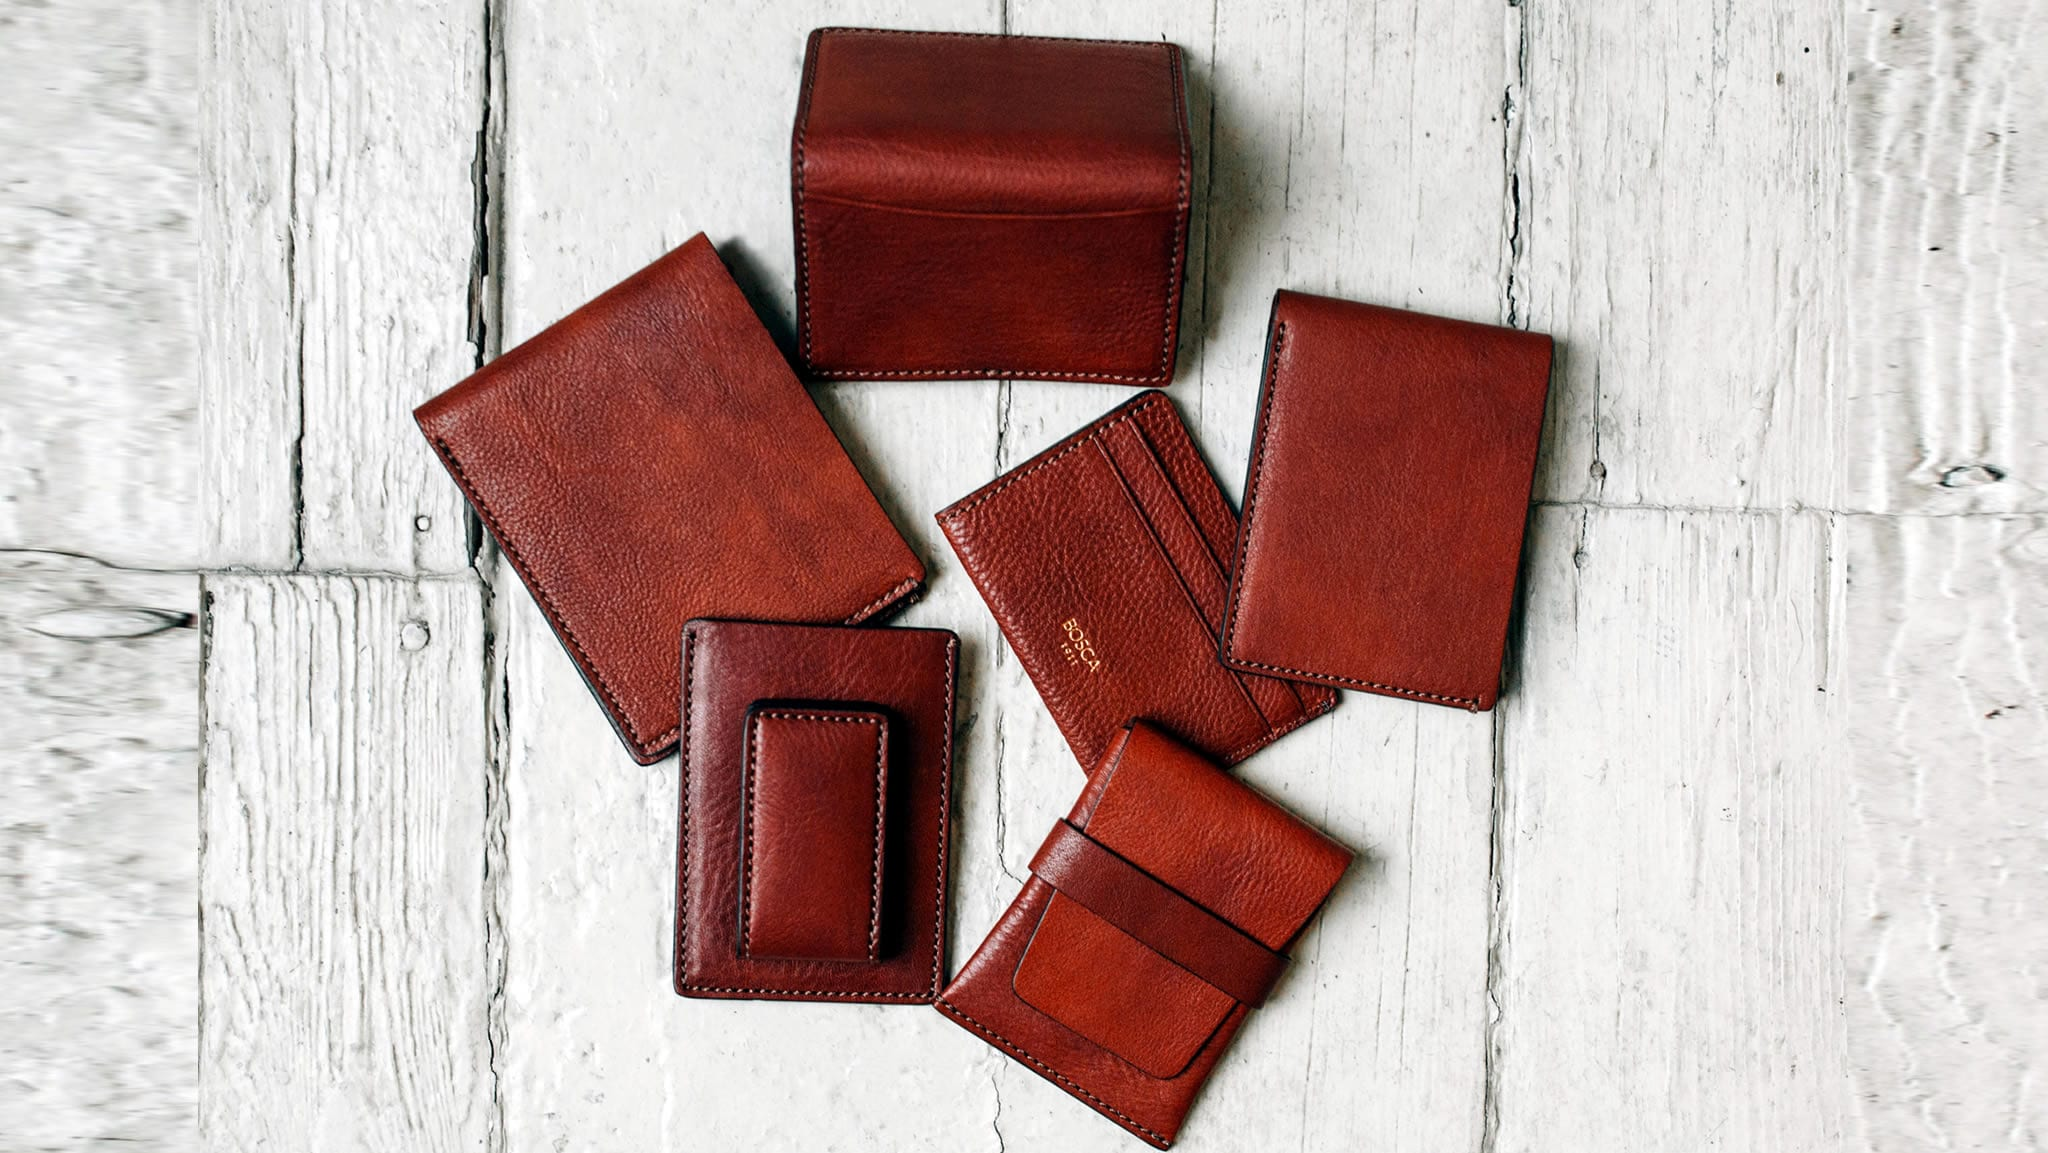 Fine Leather and Accessories in Healdsburg